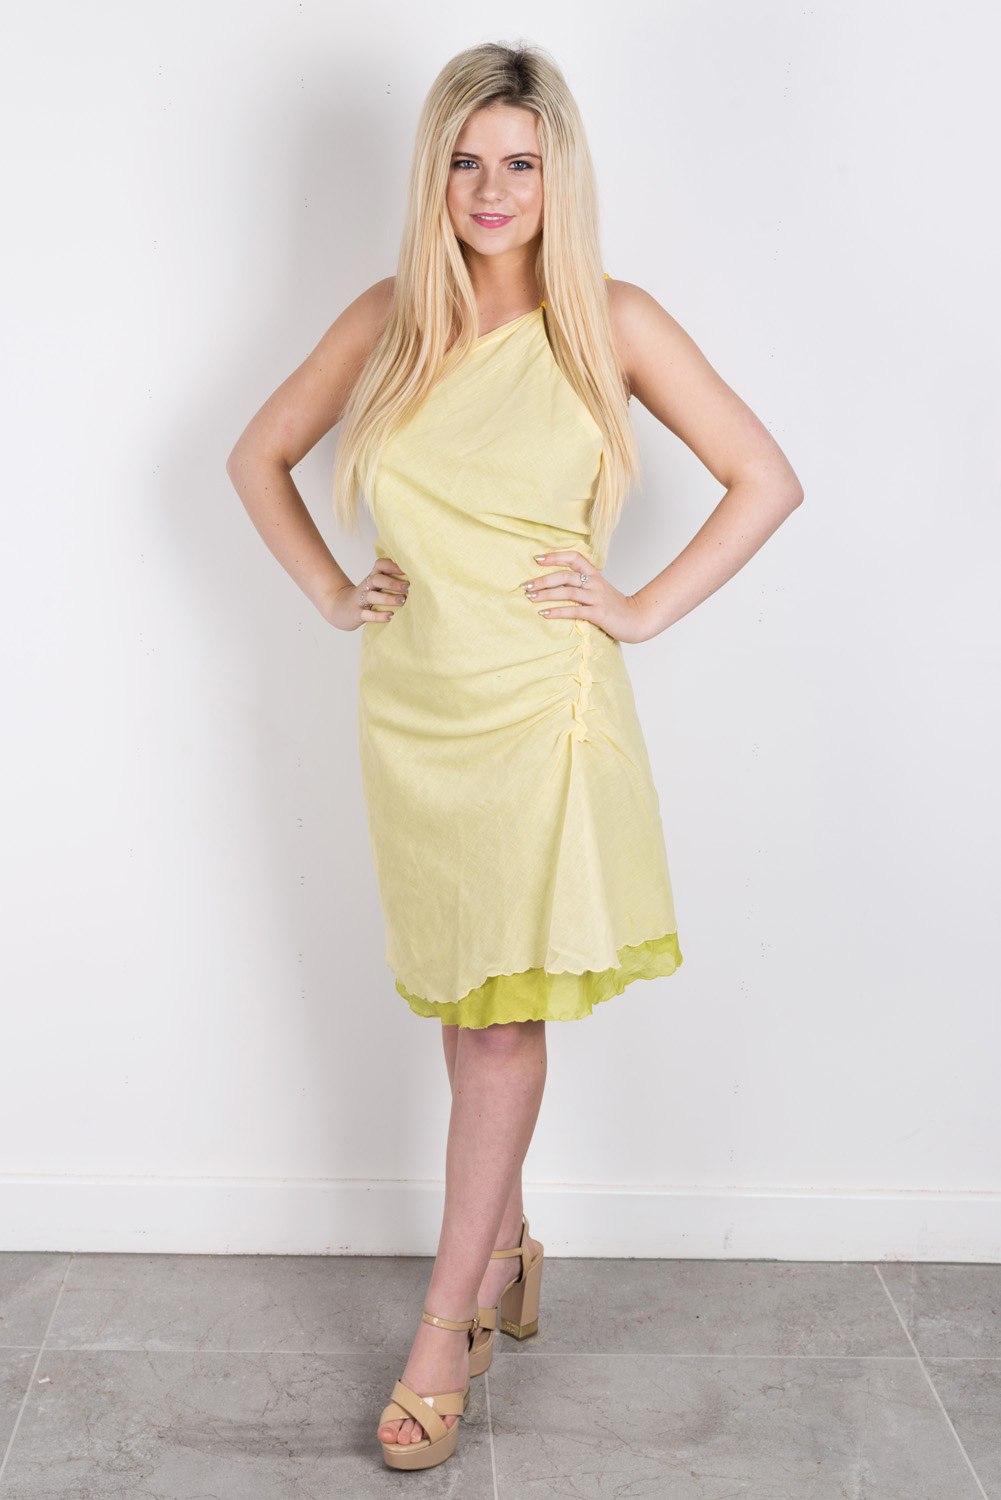 Bias cut layered dress perfect for festivals, beachwear and weddings